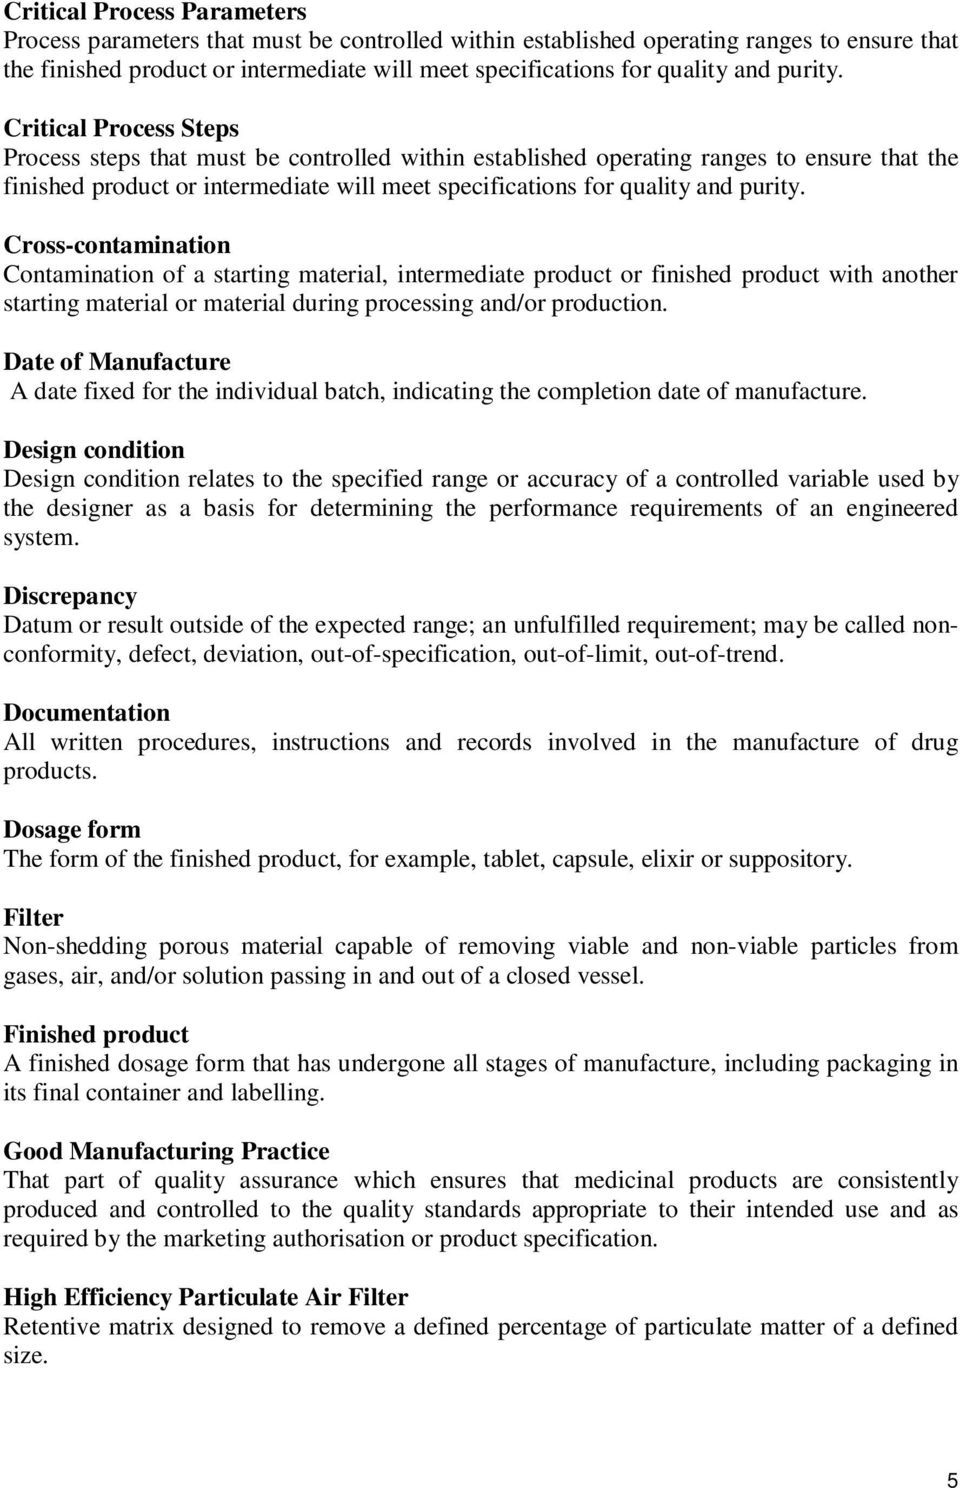 GOOD MANUFACTURING PRACTICE GUIDELINE FOR PHARMACEUTICAL PRODUCTS - PDF